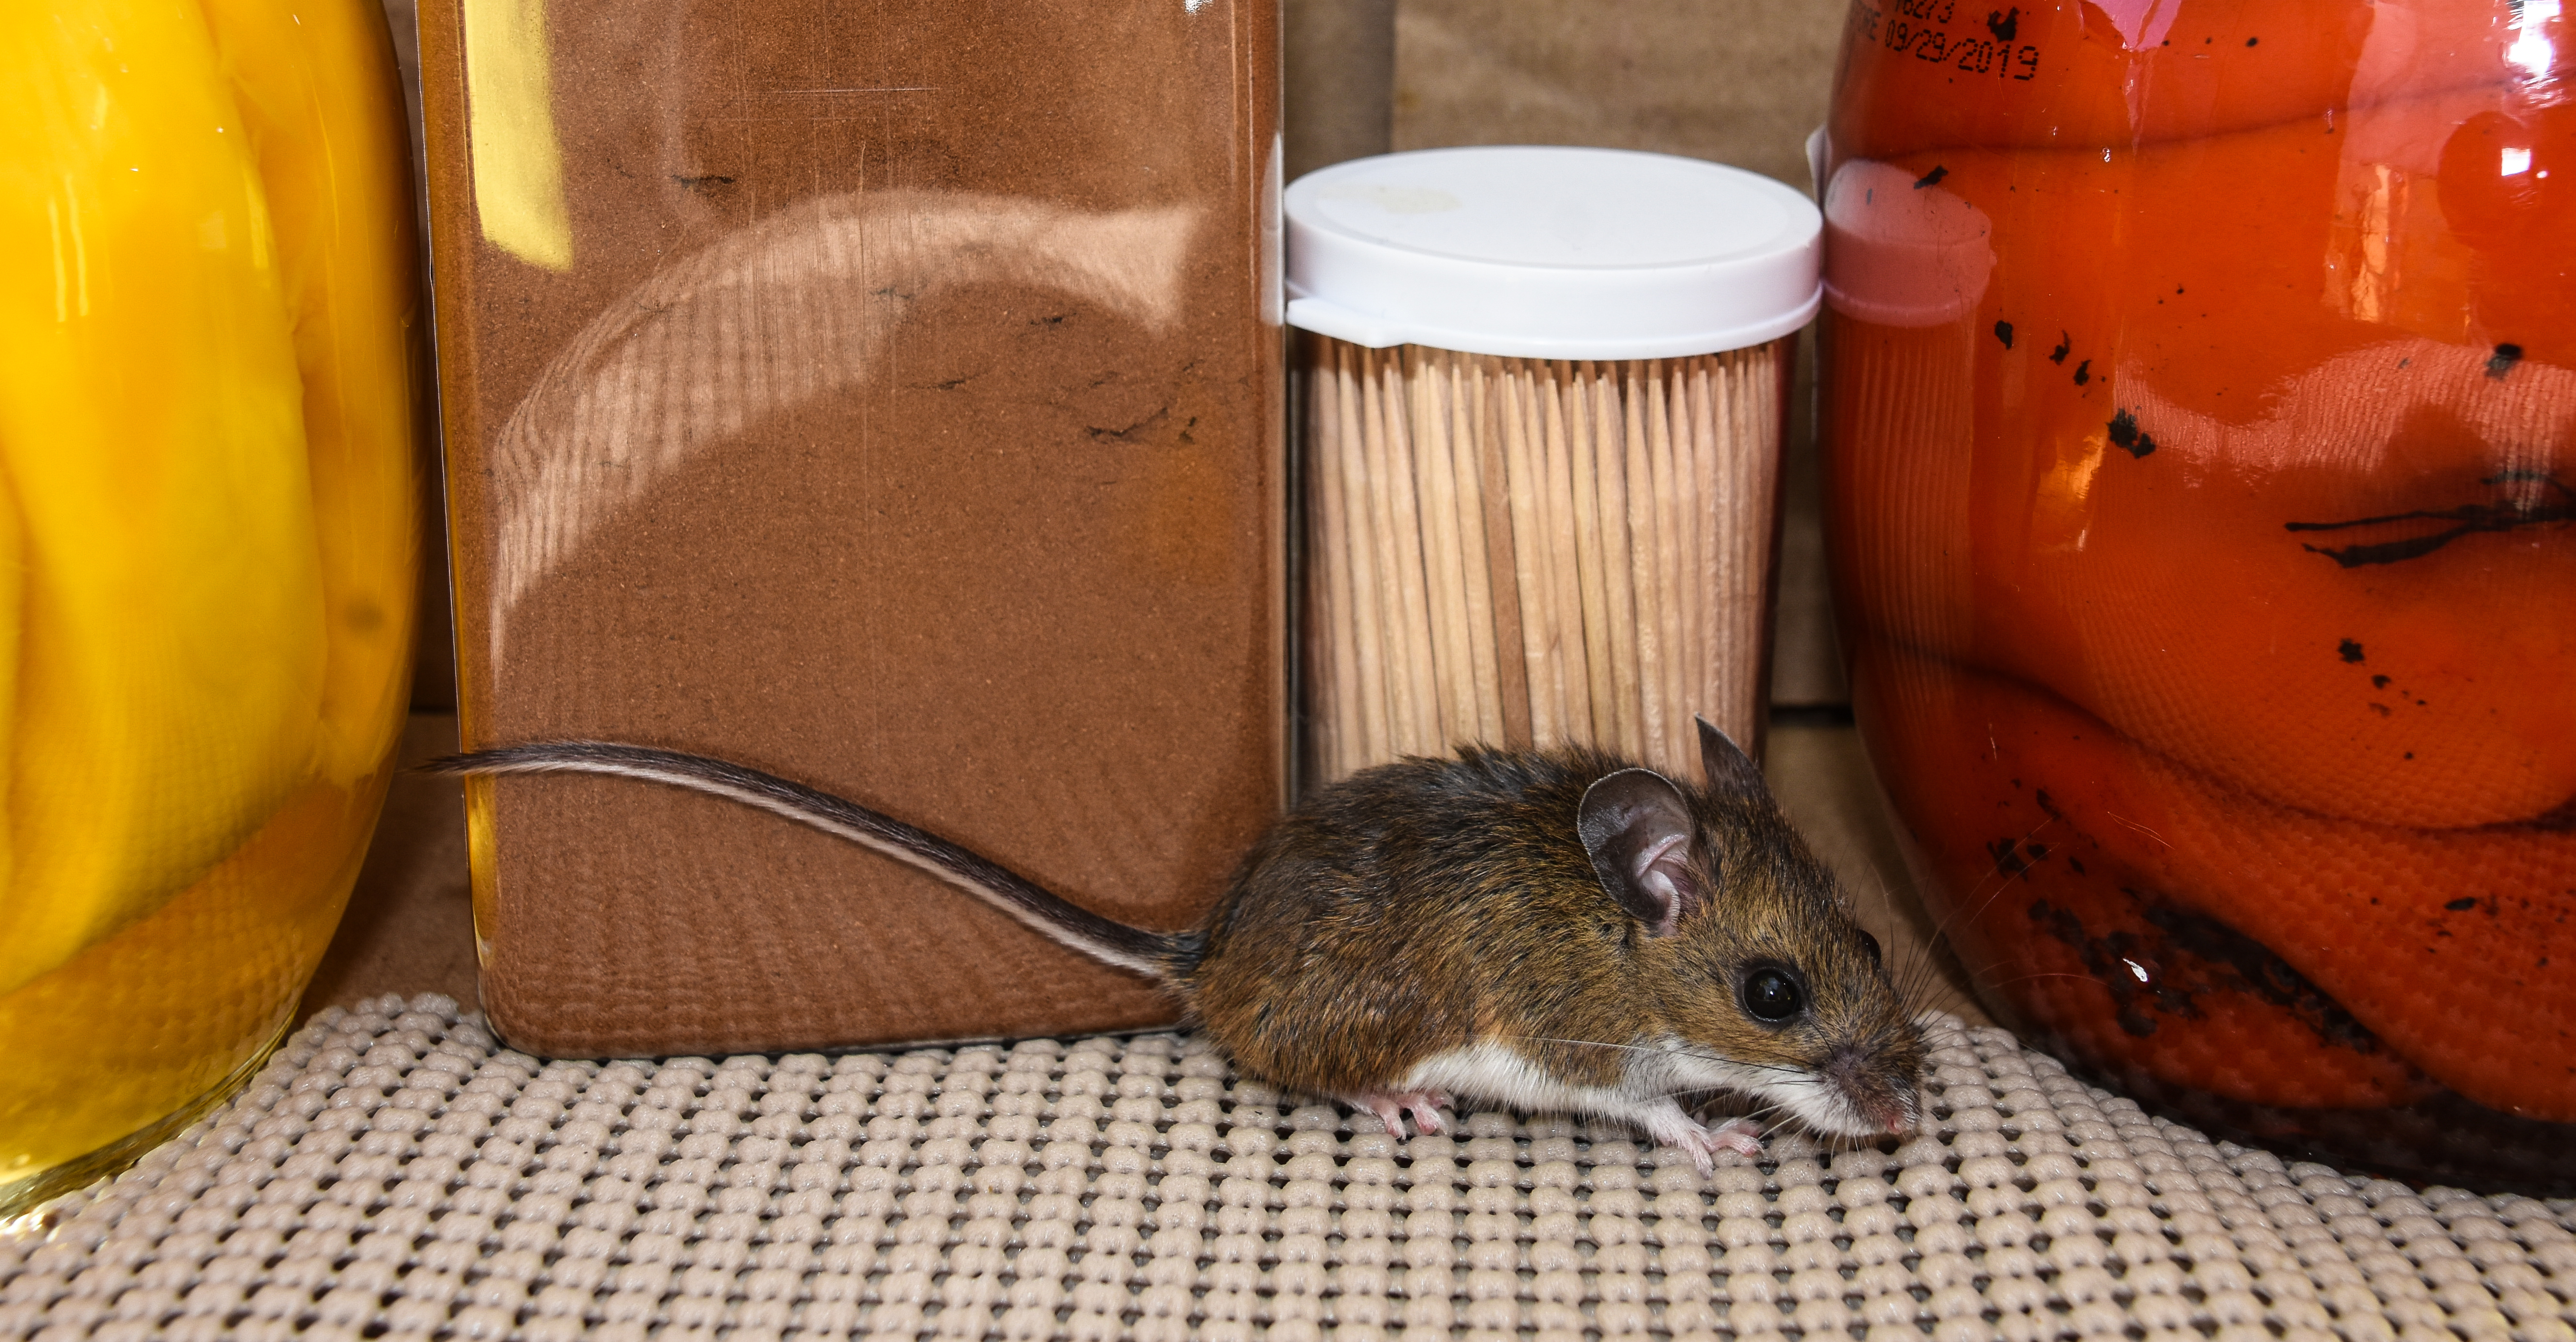 How Much Does Pest Control Cost?